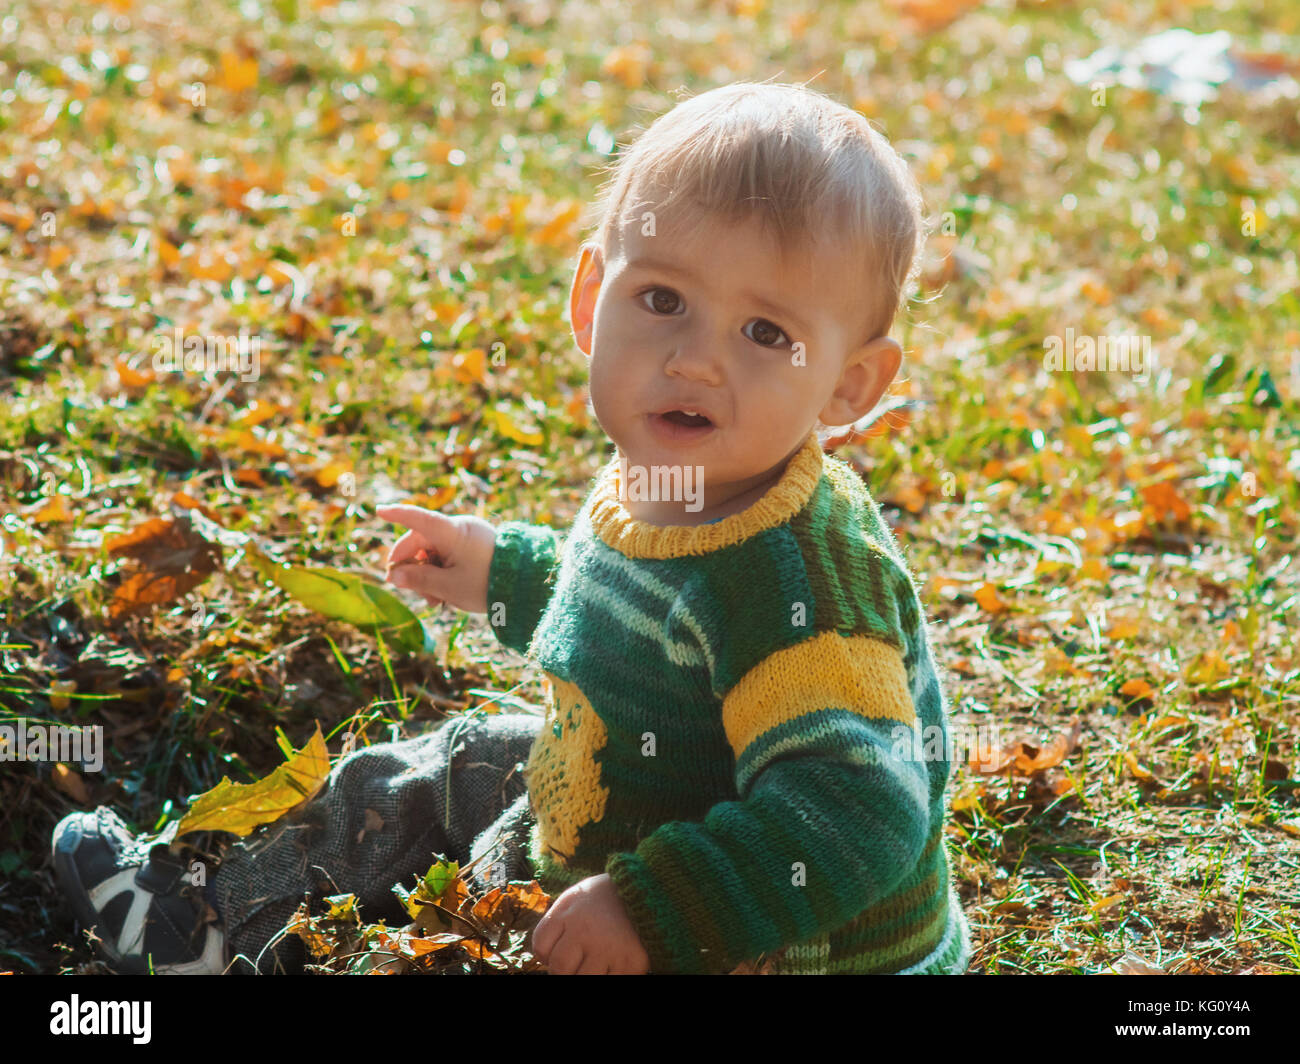 A little 1 year old baby boy sitting on autumn ground park on sunset. Child smiling and laughting, Adorable child. - Stock Image